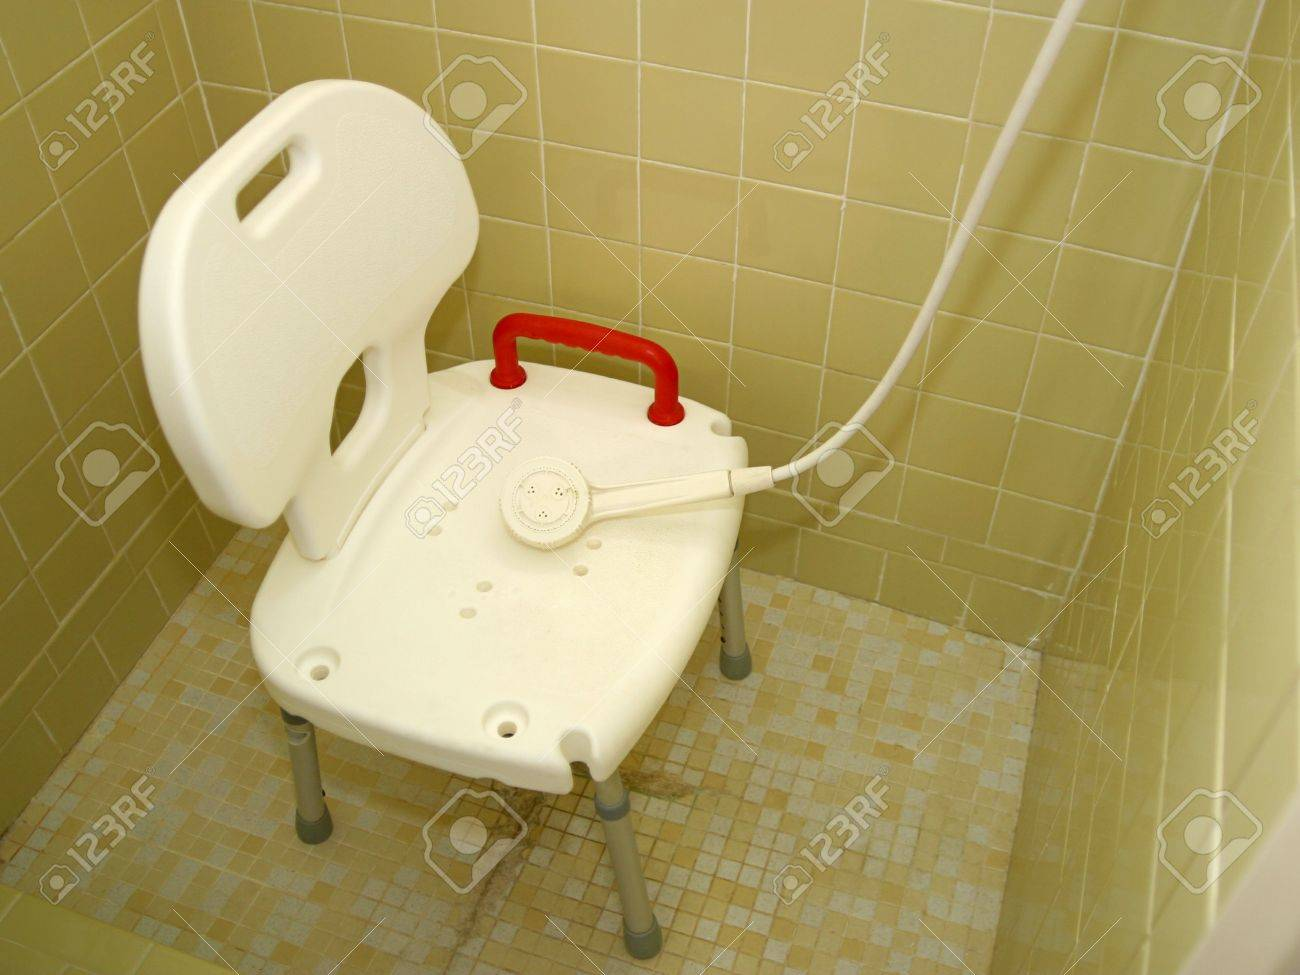 A Medical Shower Chair And Spray Shower Head For Injured Or Disabled